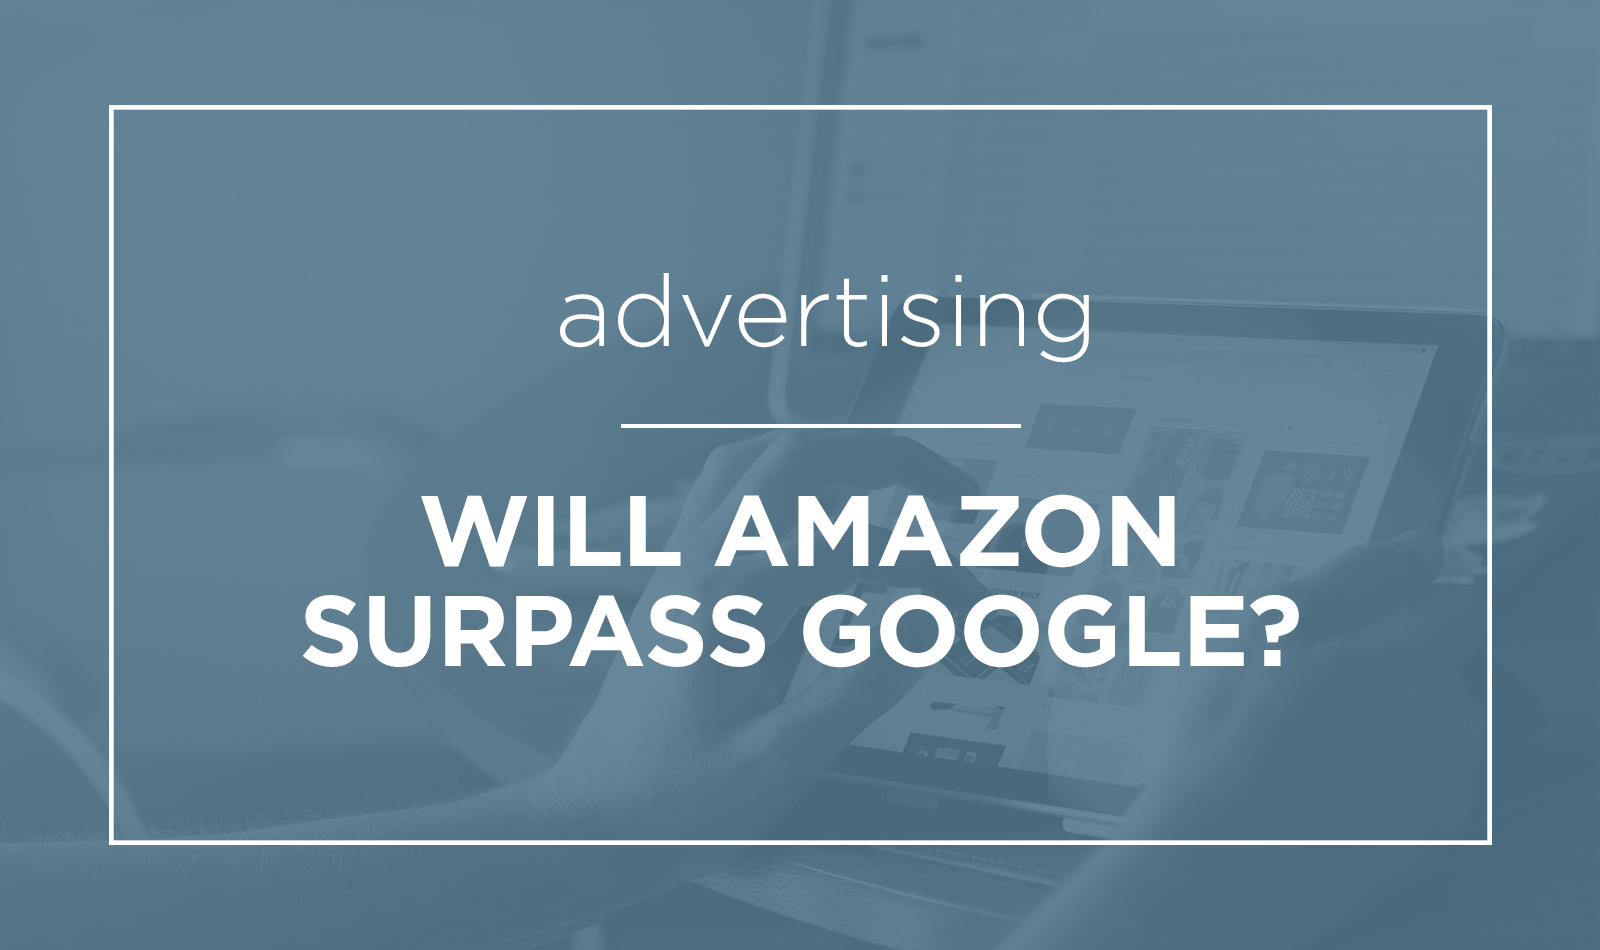 amazon-ad-surpass-google-person-online-shopping